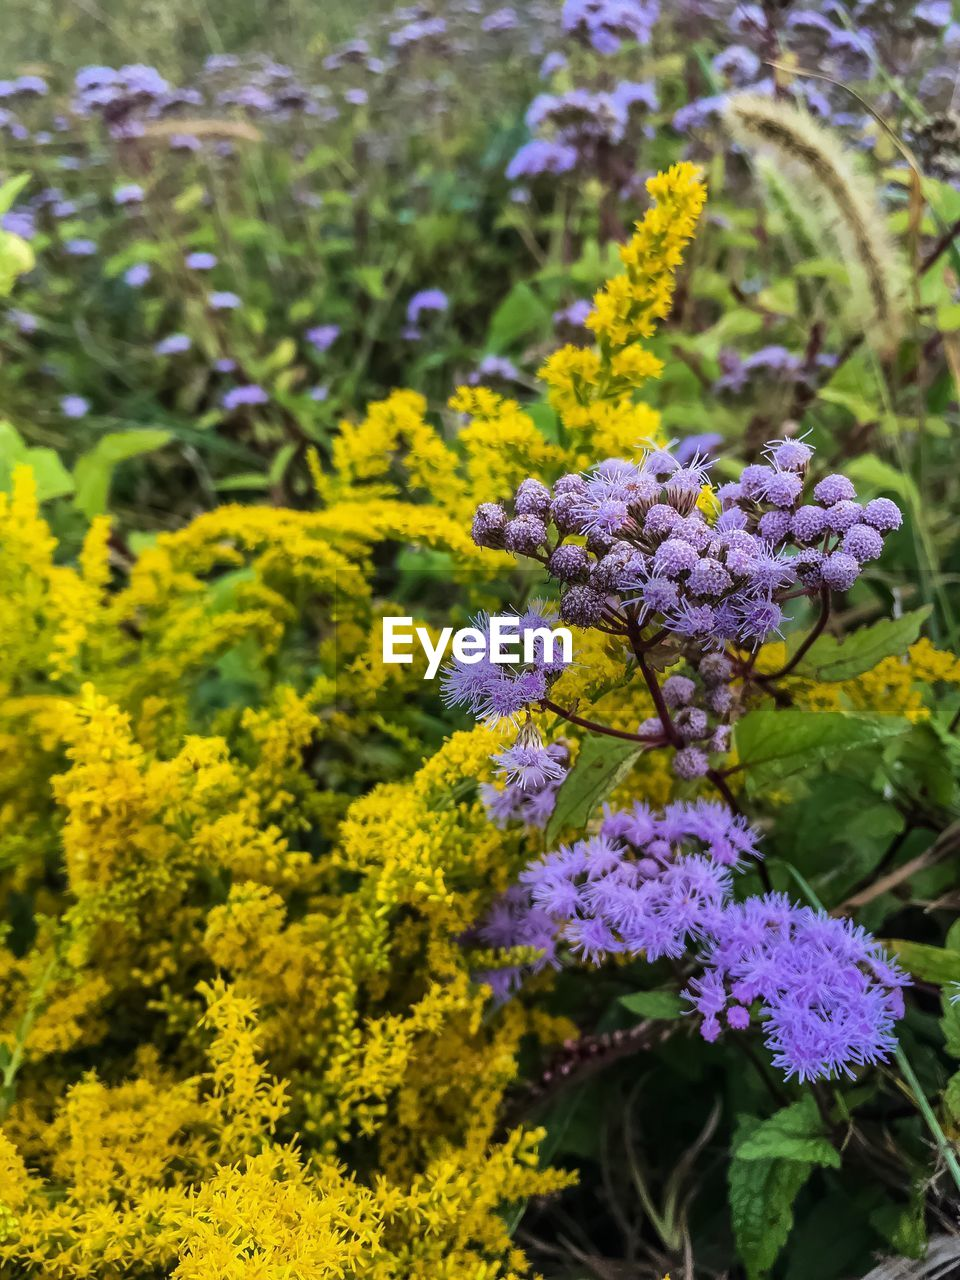 flower, growth, nature, fragility, plant, beauty in nature, freshness, purple, day, no people, yellow, petal, outdoors, green color, blooming, close-up, flower head